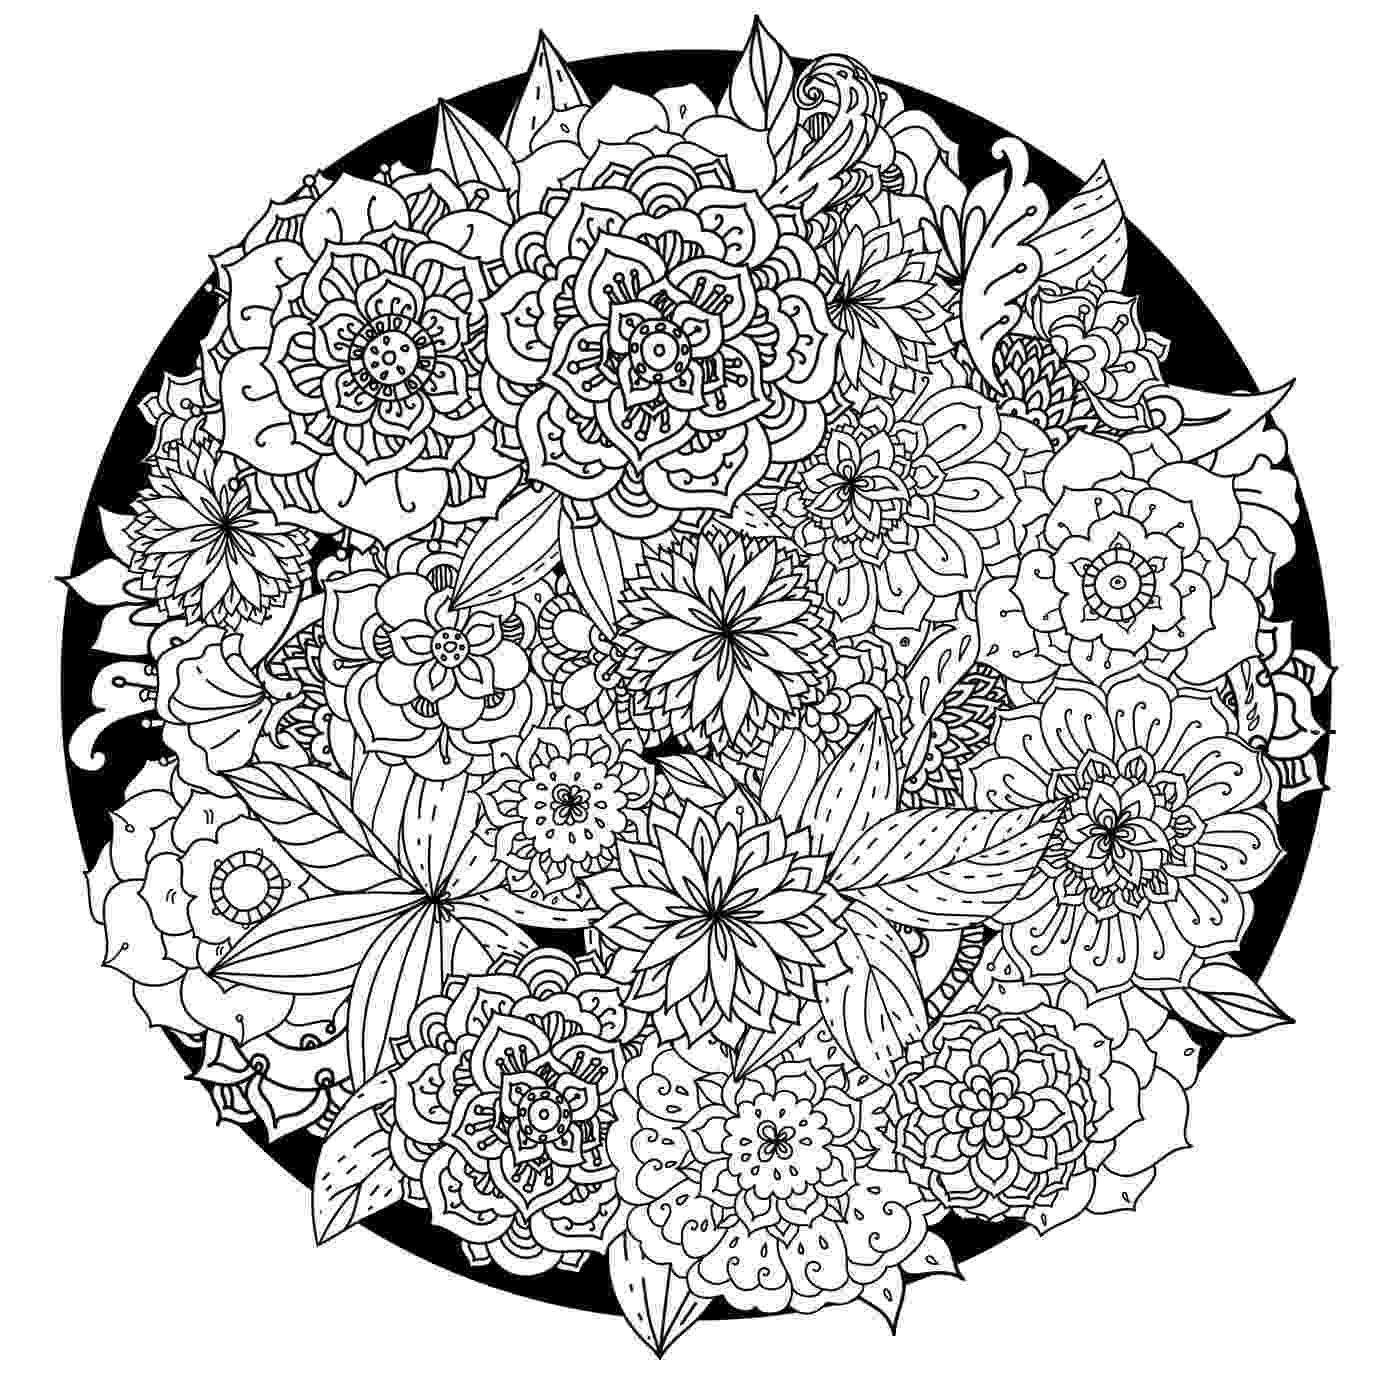 coloring pages for adults mandala don39t eat the paste mandalas coloring pages pages adults mandala coloring for